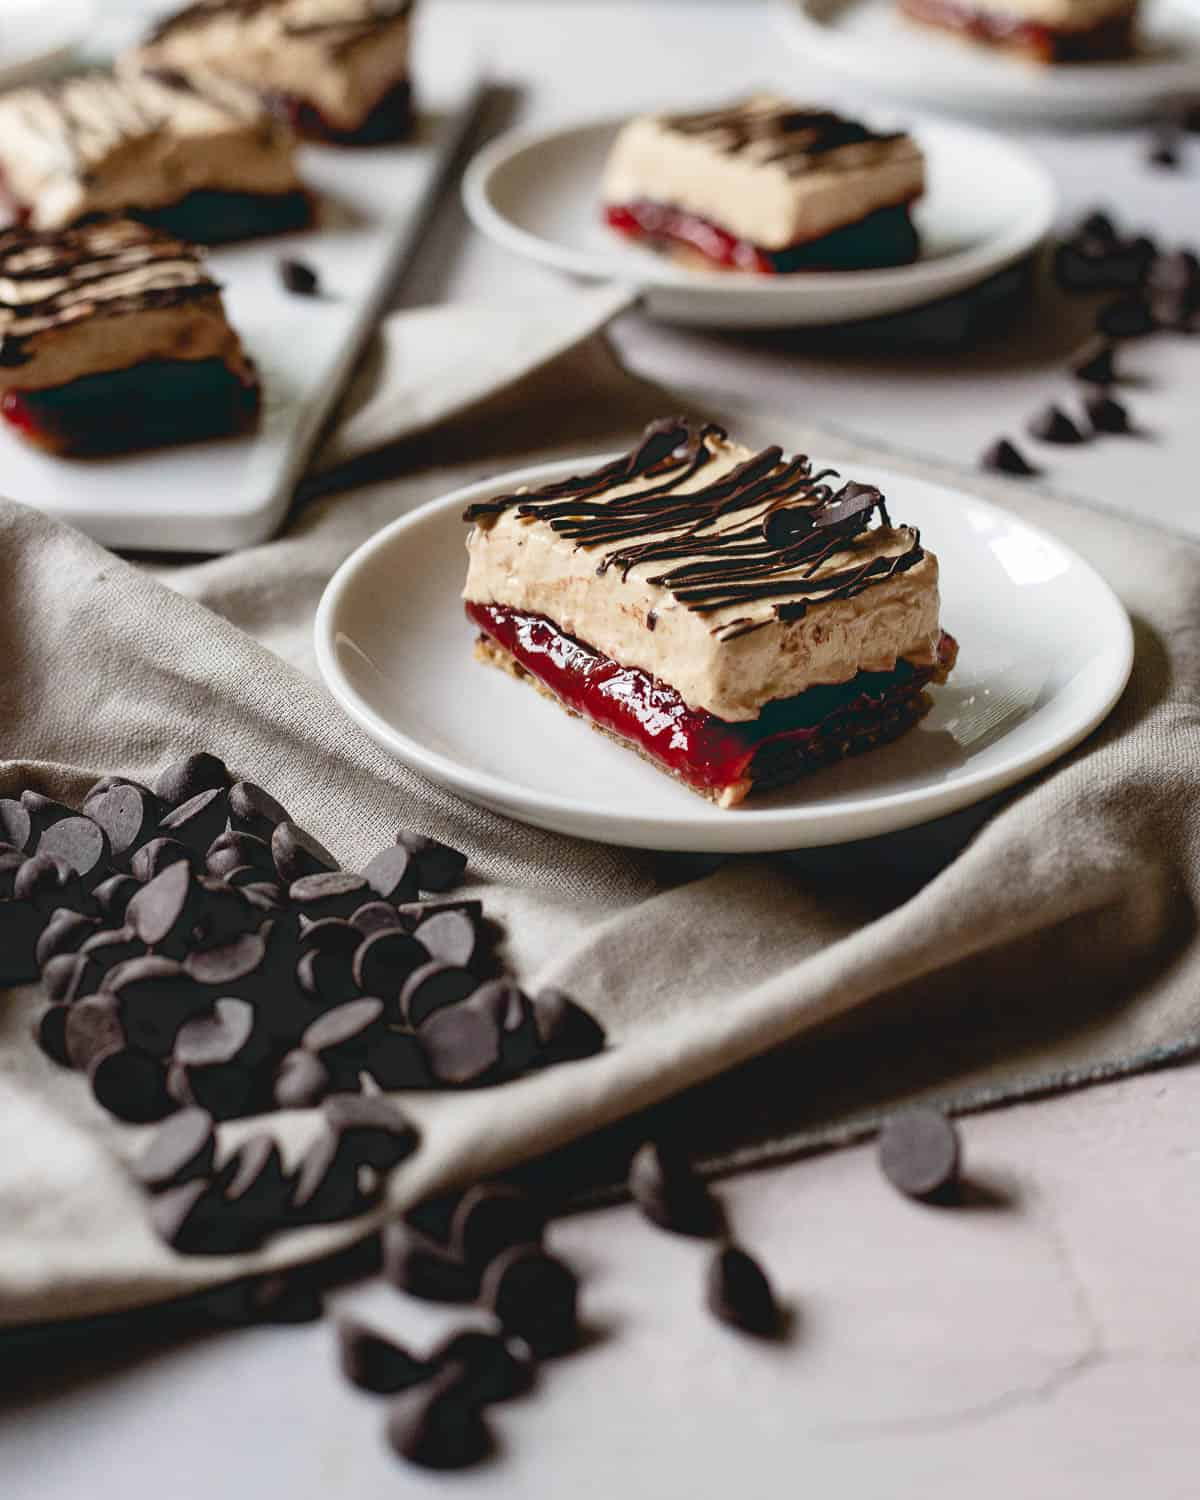 These peanut butter and jelly frozen yogurt bars have a chewy granola bar base and layers of sweet strawberry jelly, creamy peanut butter yogurt and a chocolate drizzle topping.